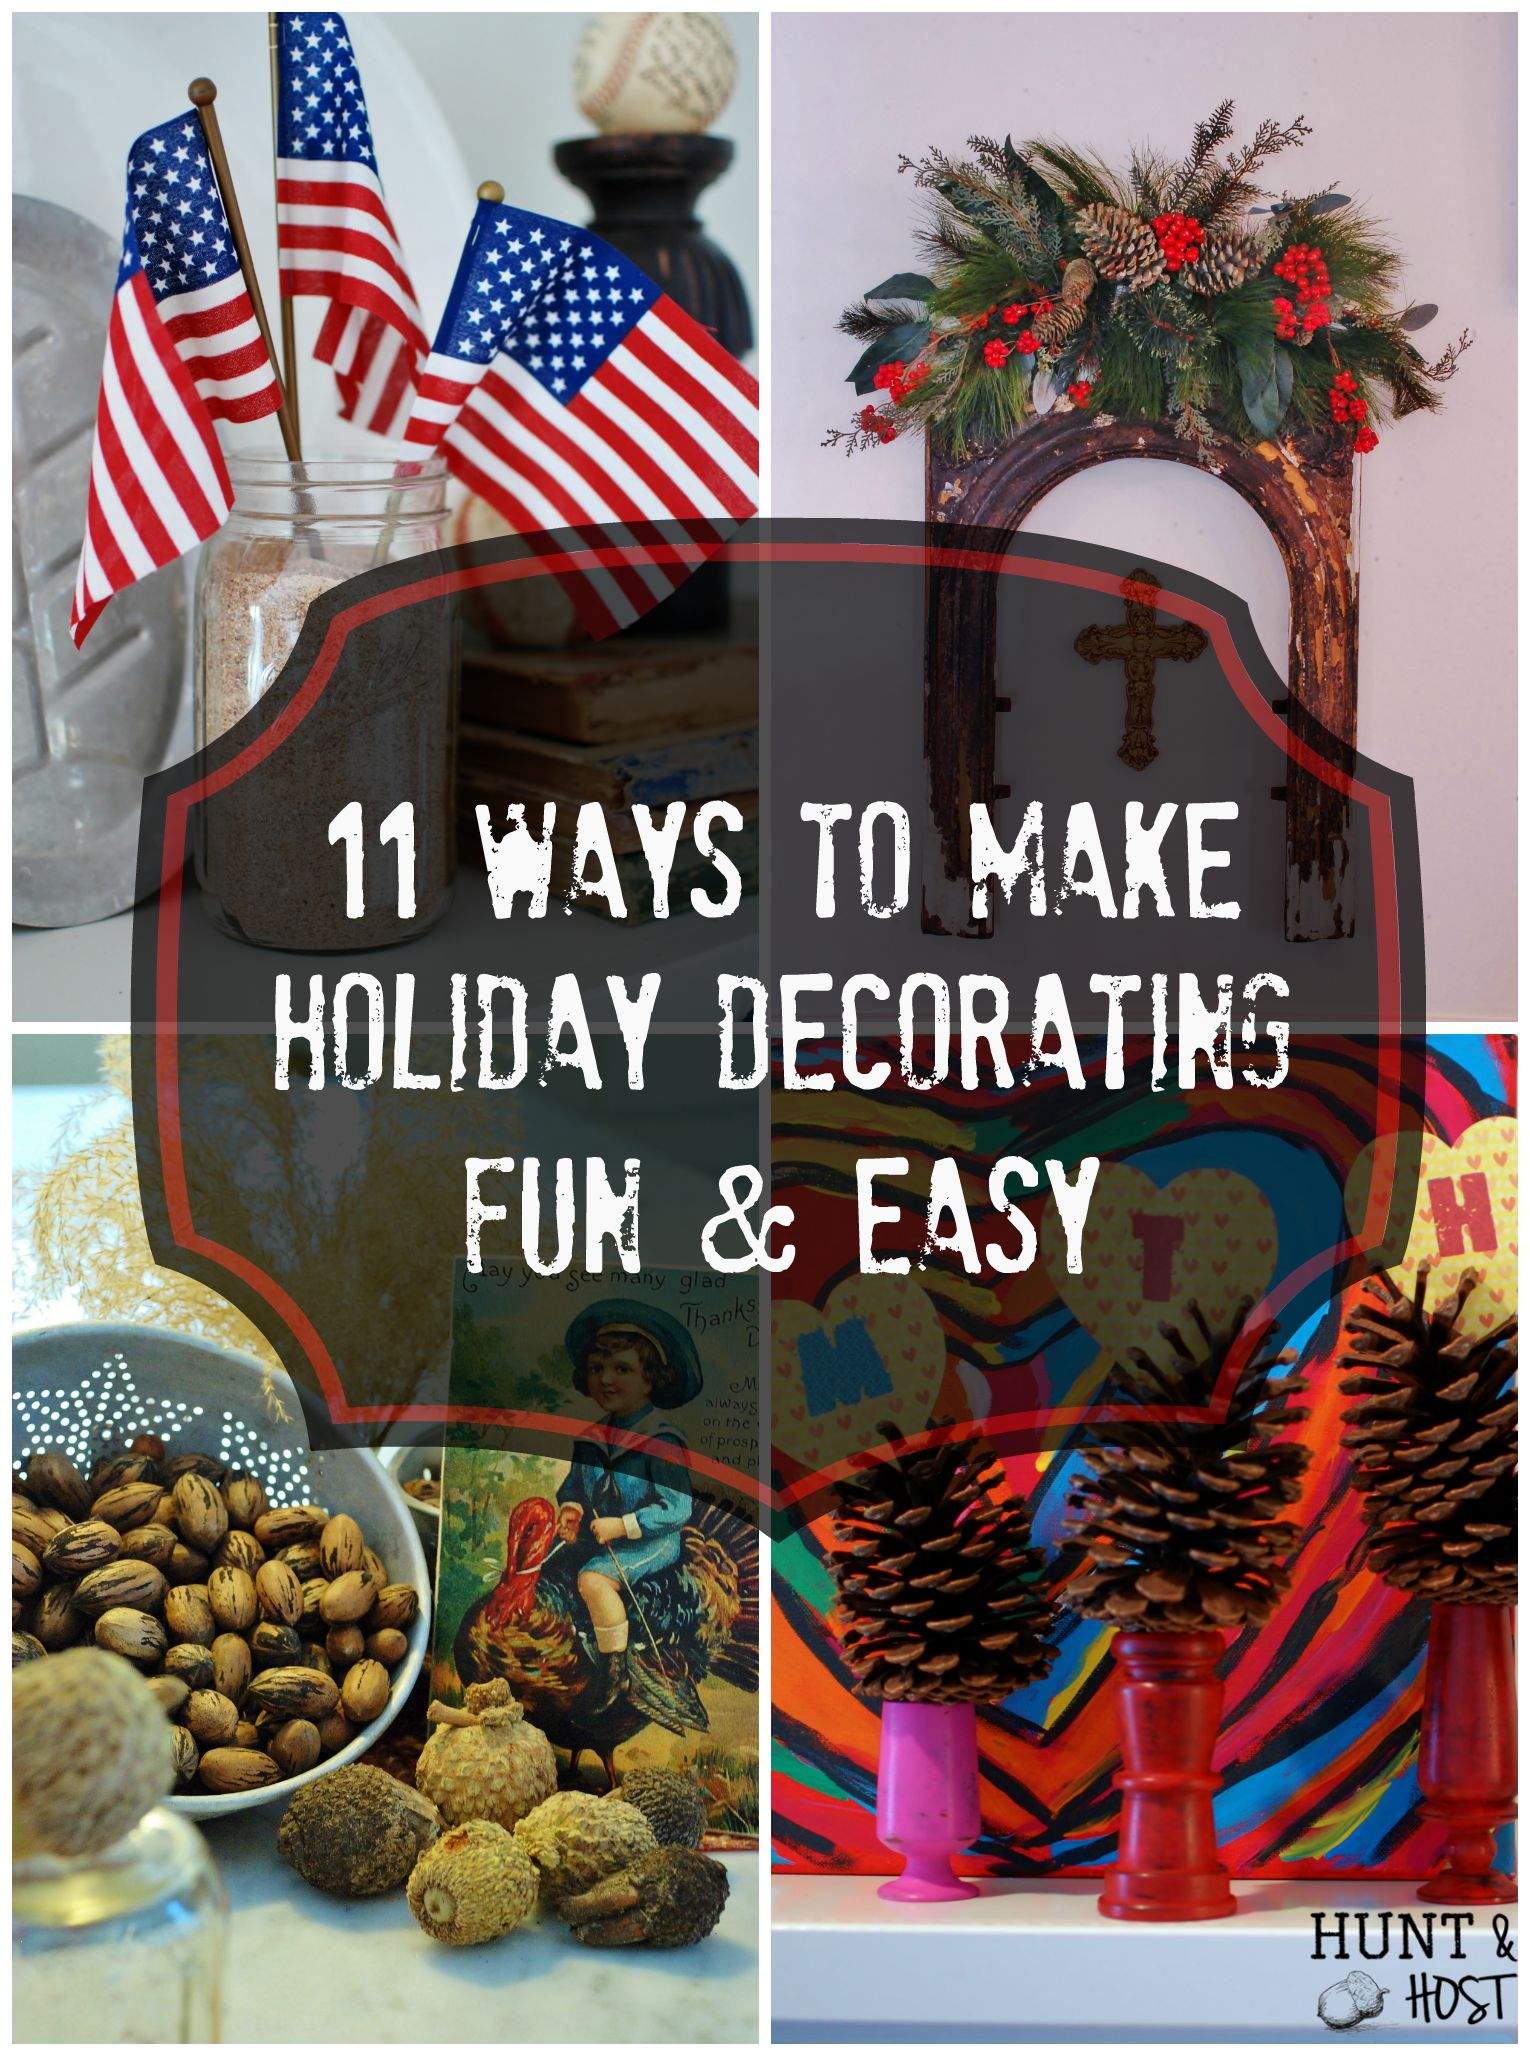 11 Ways To Make Holiday Decorating Fun And Easy